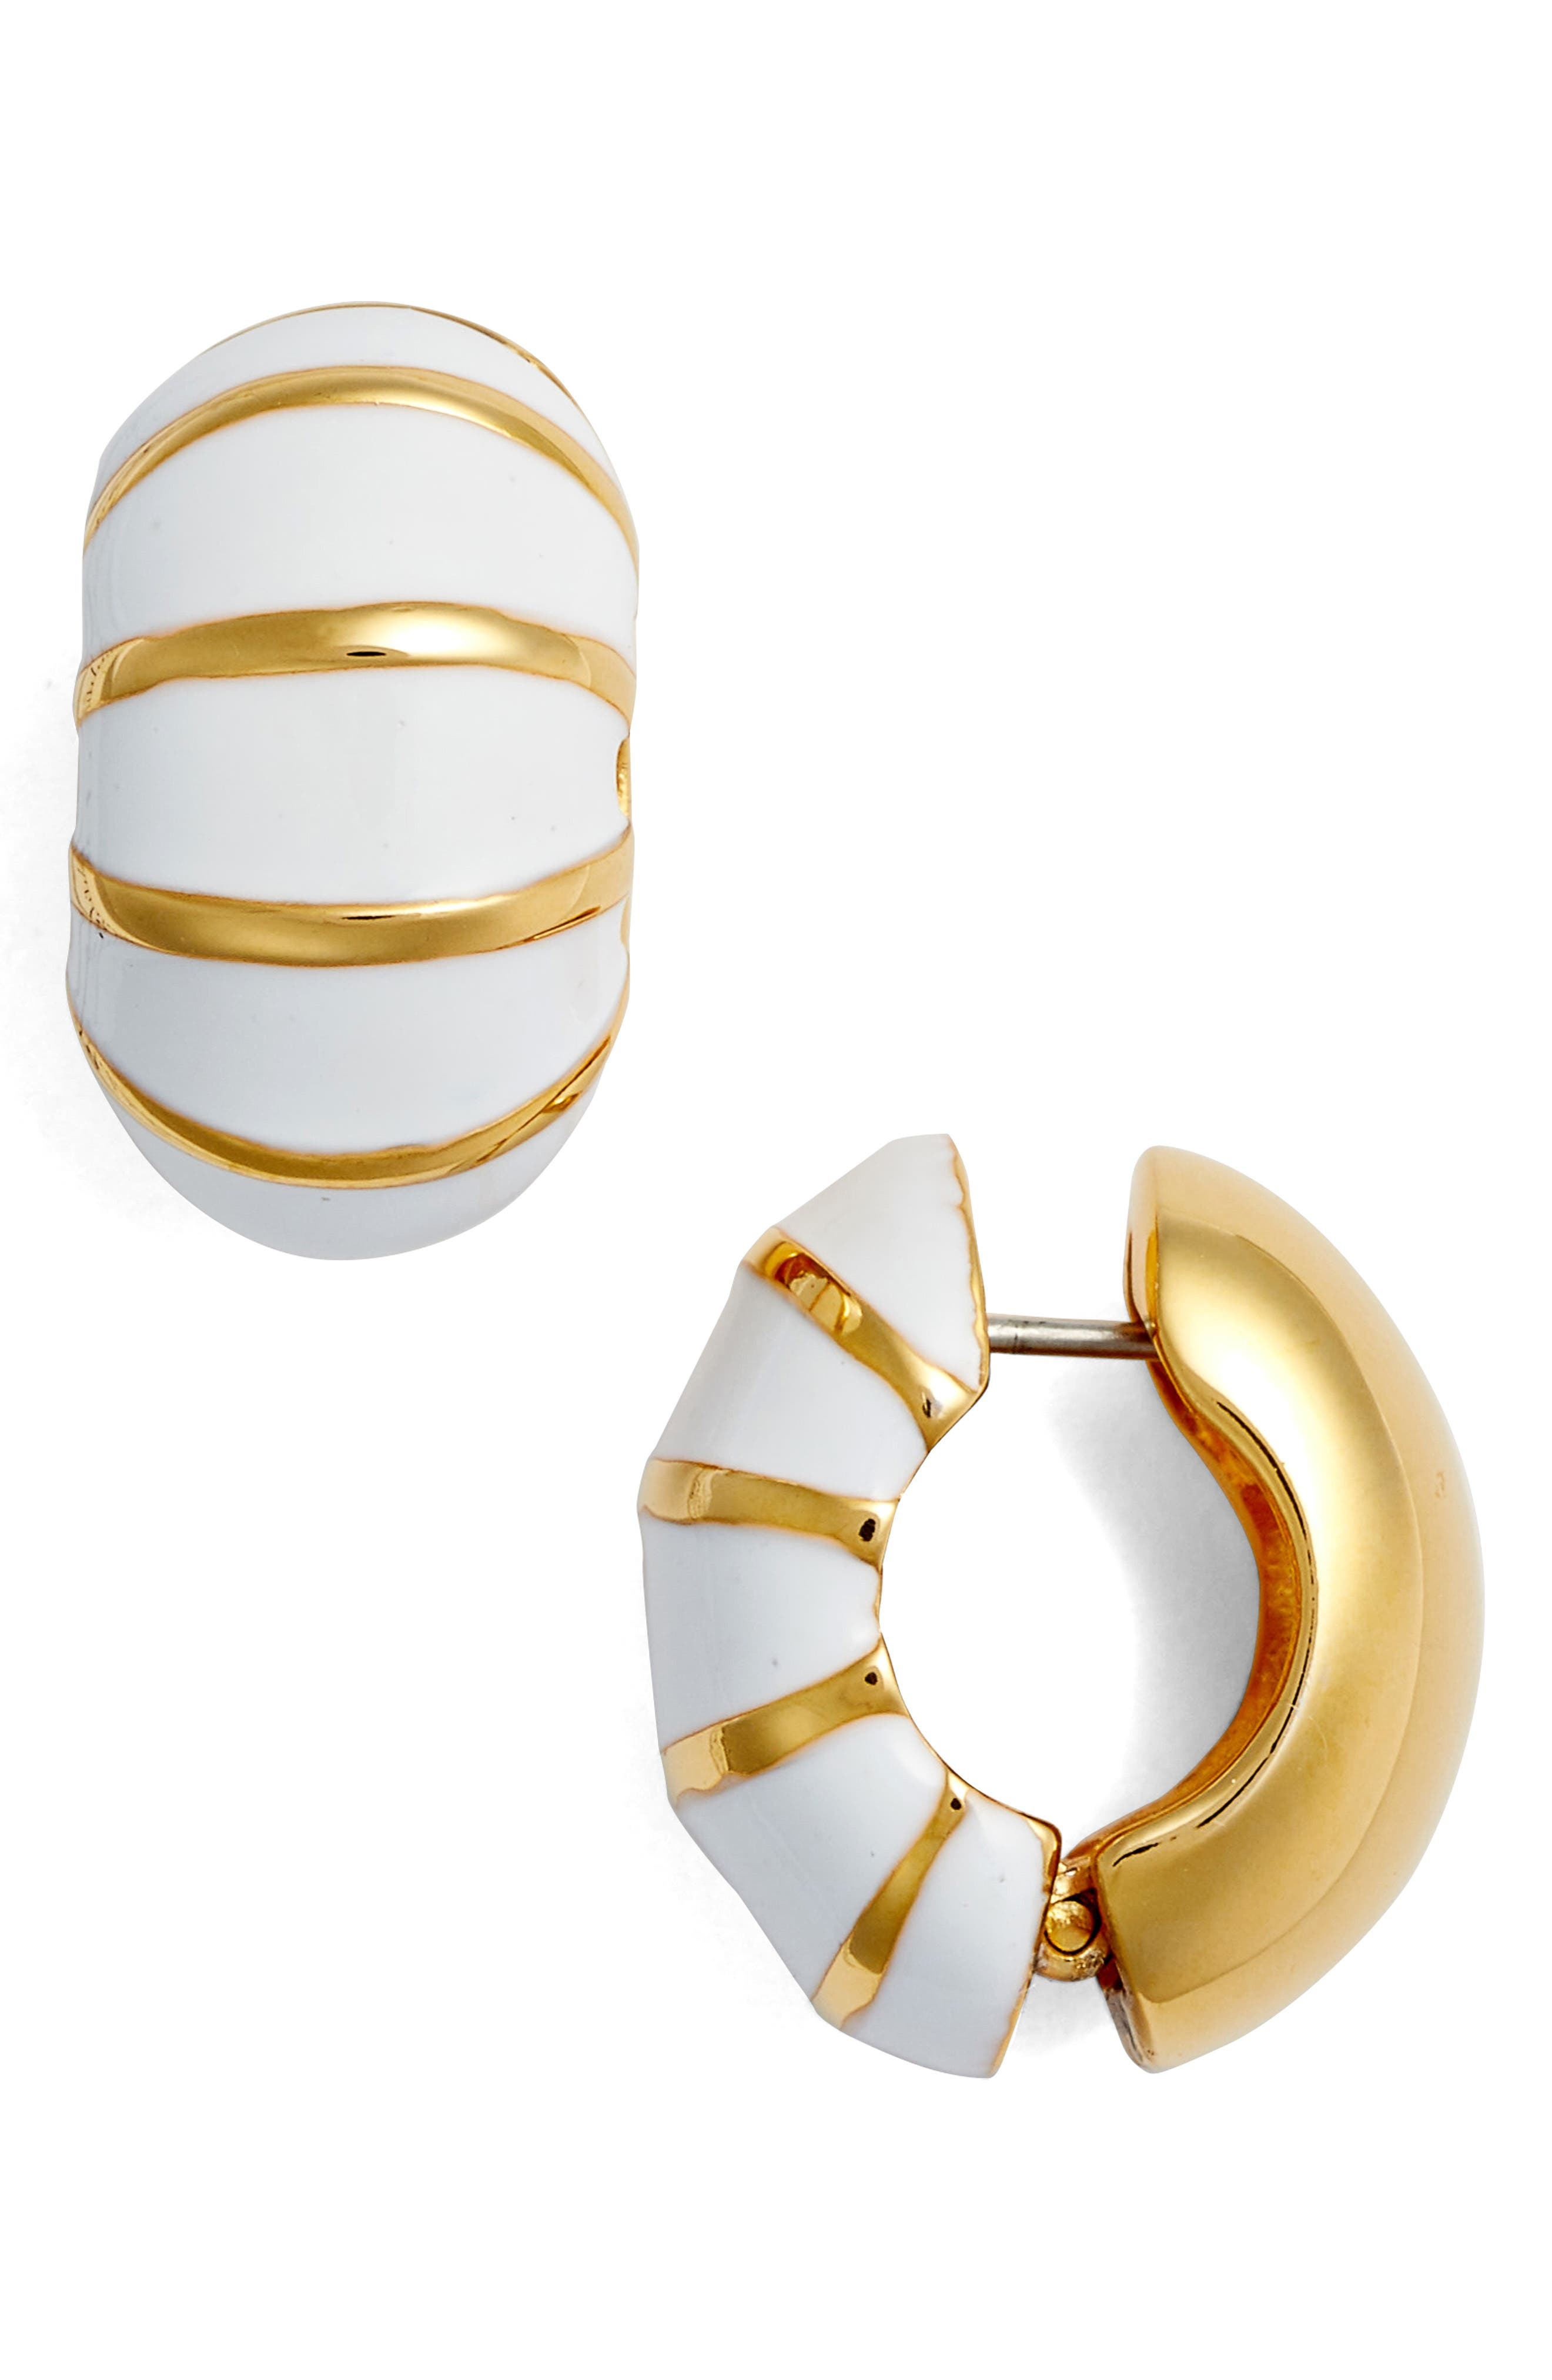 Goldtone & White Reversible Earrings,                         Main,                         color, WHITE/ GOLD